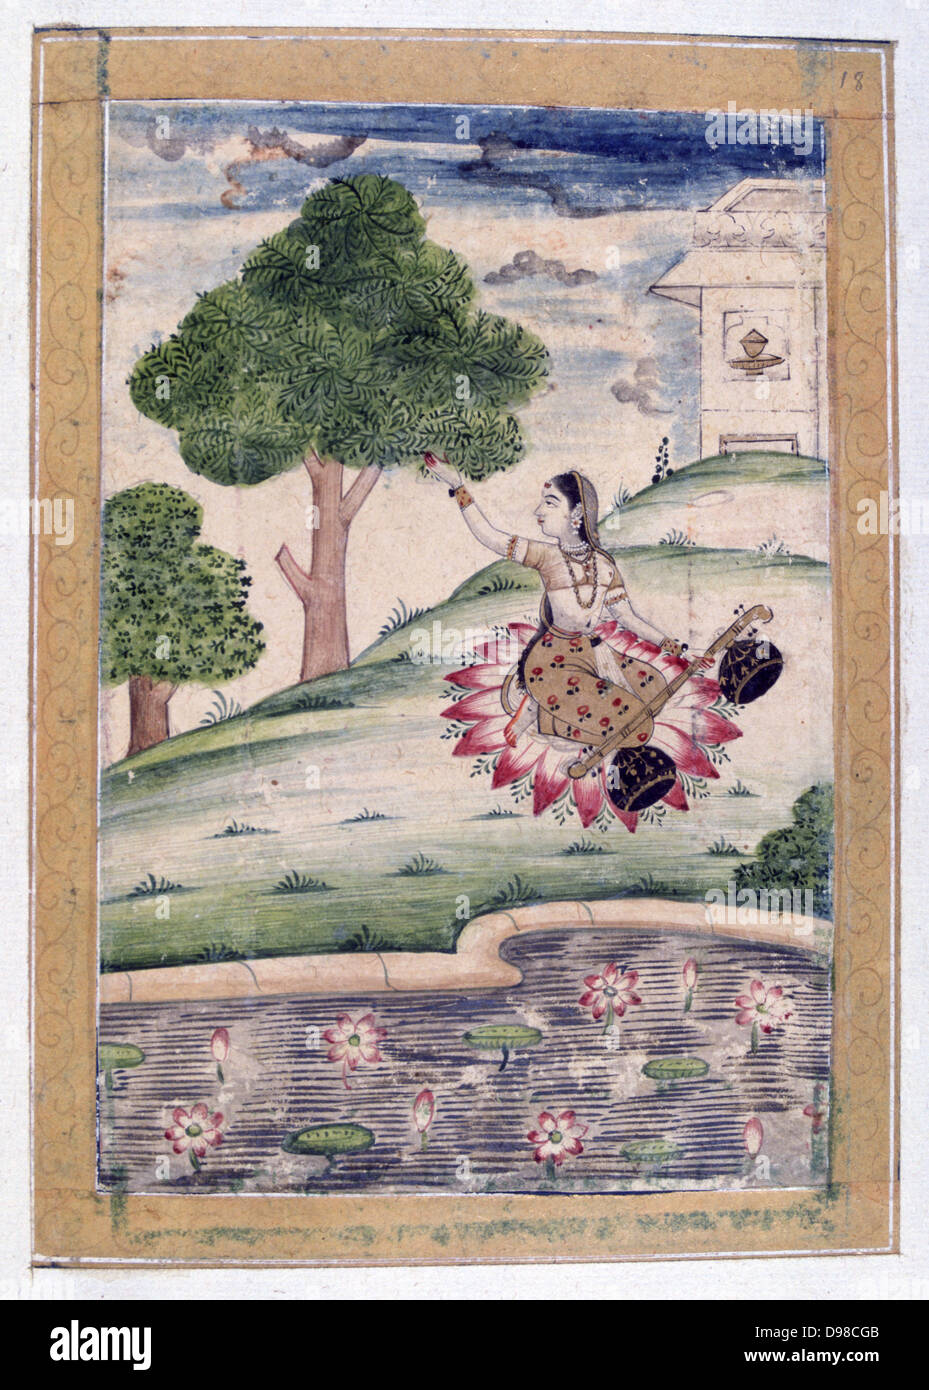 Album Of Ragamala Female Musician Kneeling On Lotus Petals Seated